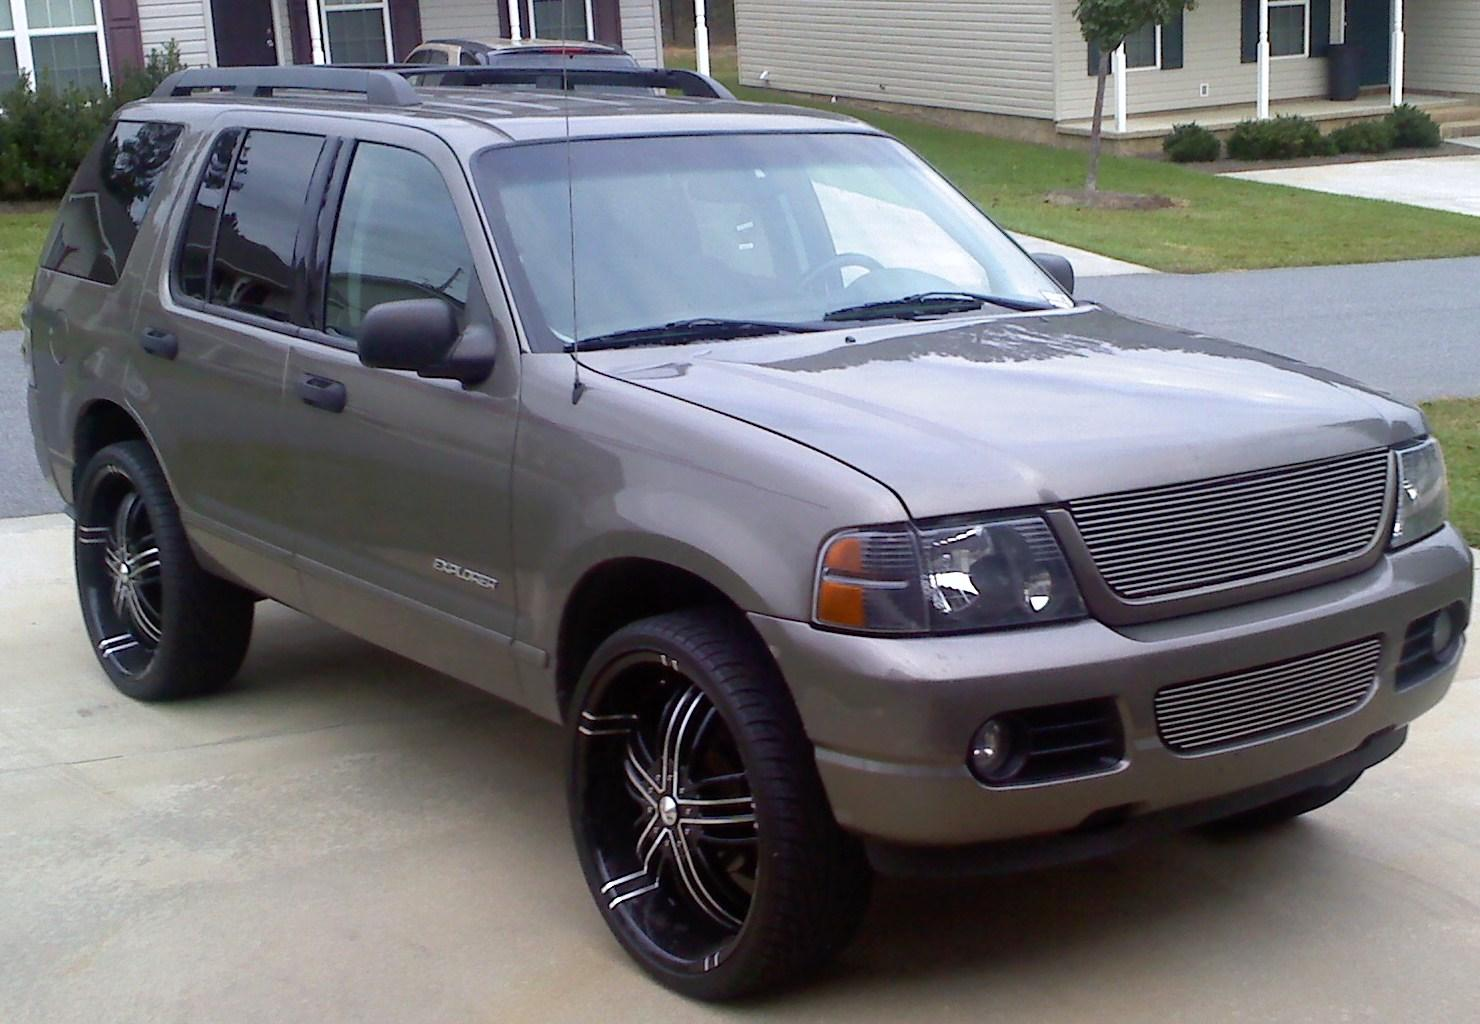 mochadda 2005 Ford Explorer Specs, Photos, Modification ...